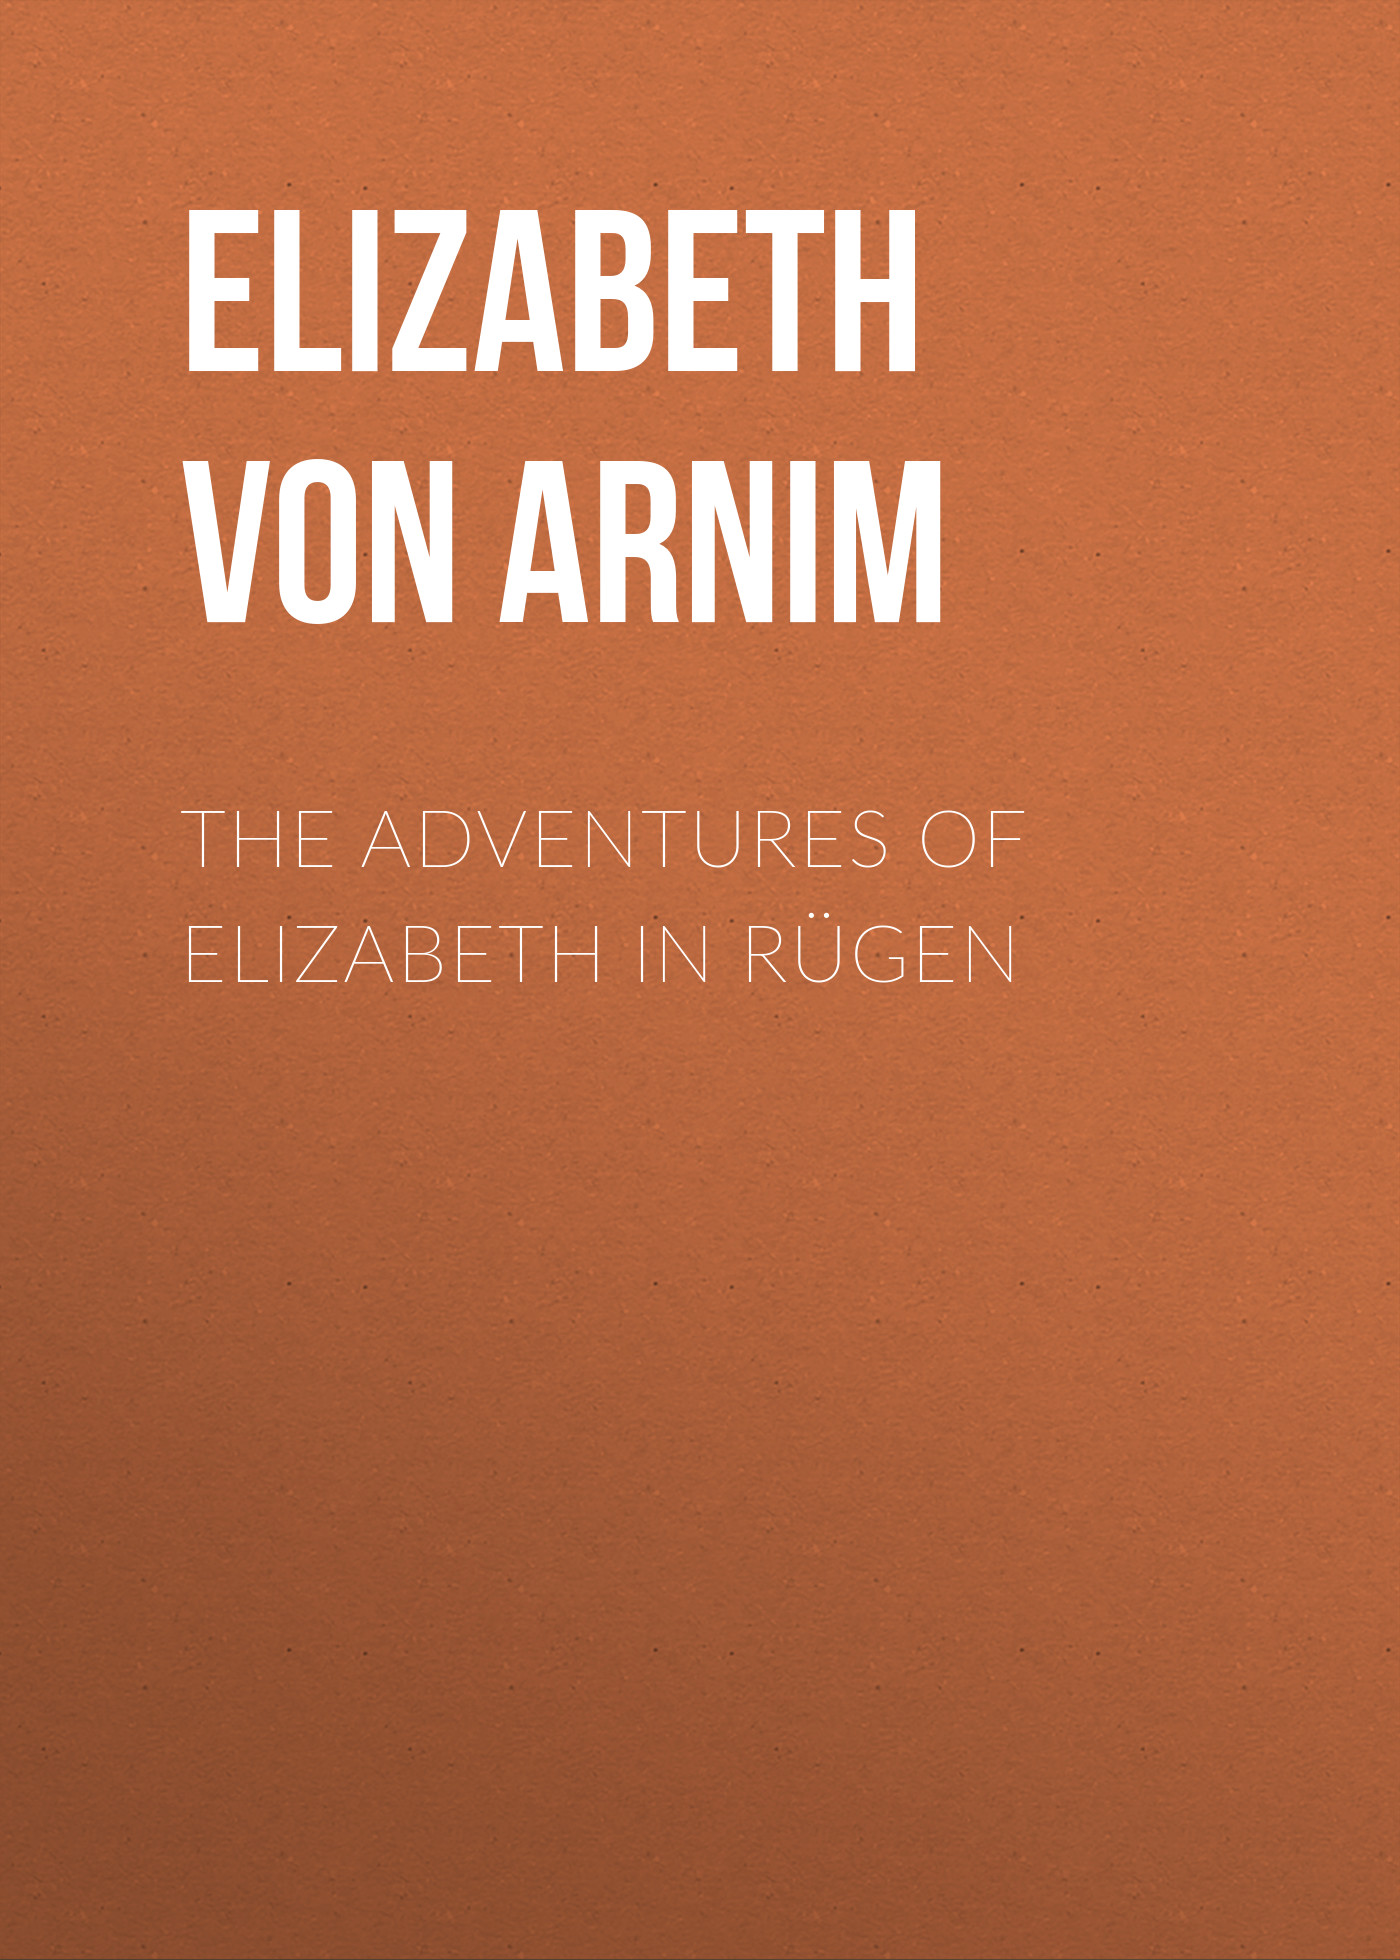 Elizabeth von Arnim The Adventures of Elizabeth in Rügen цена 2017